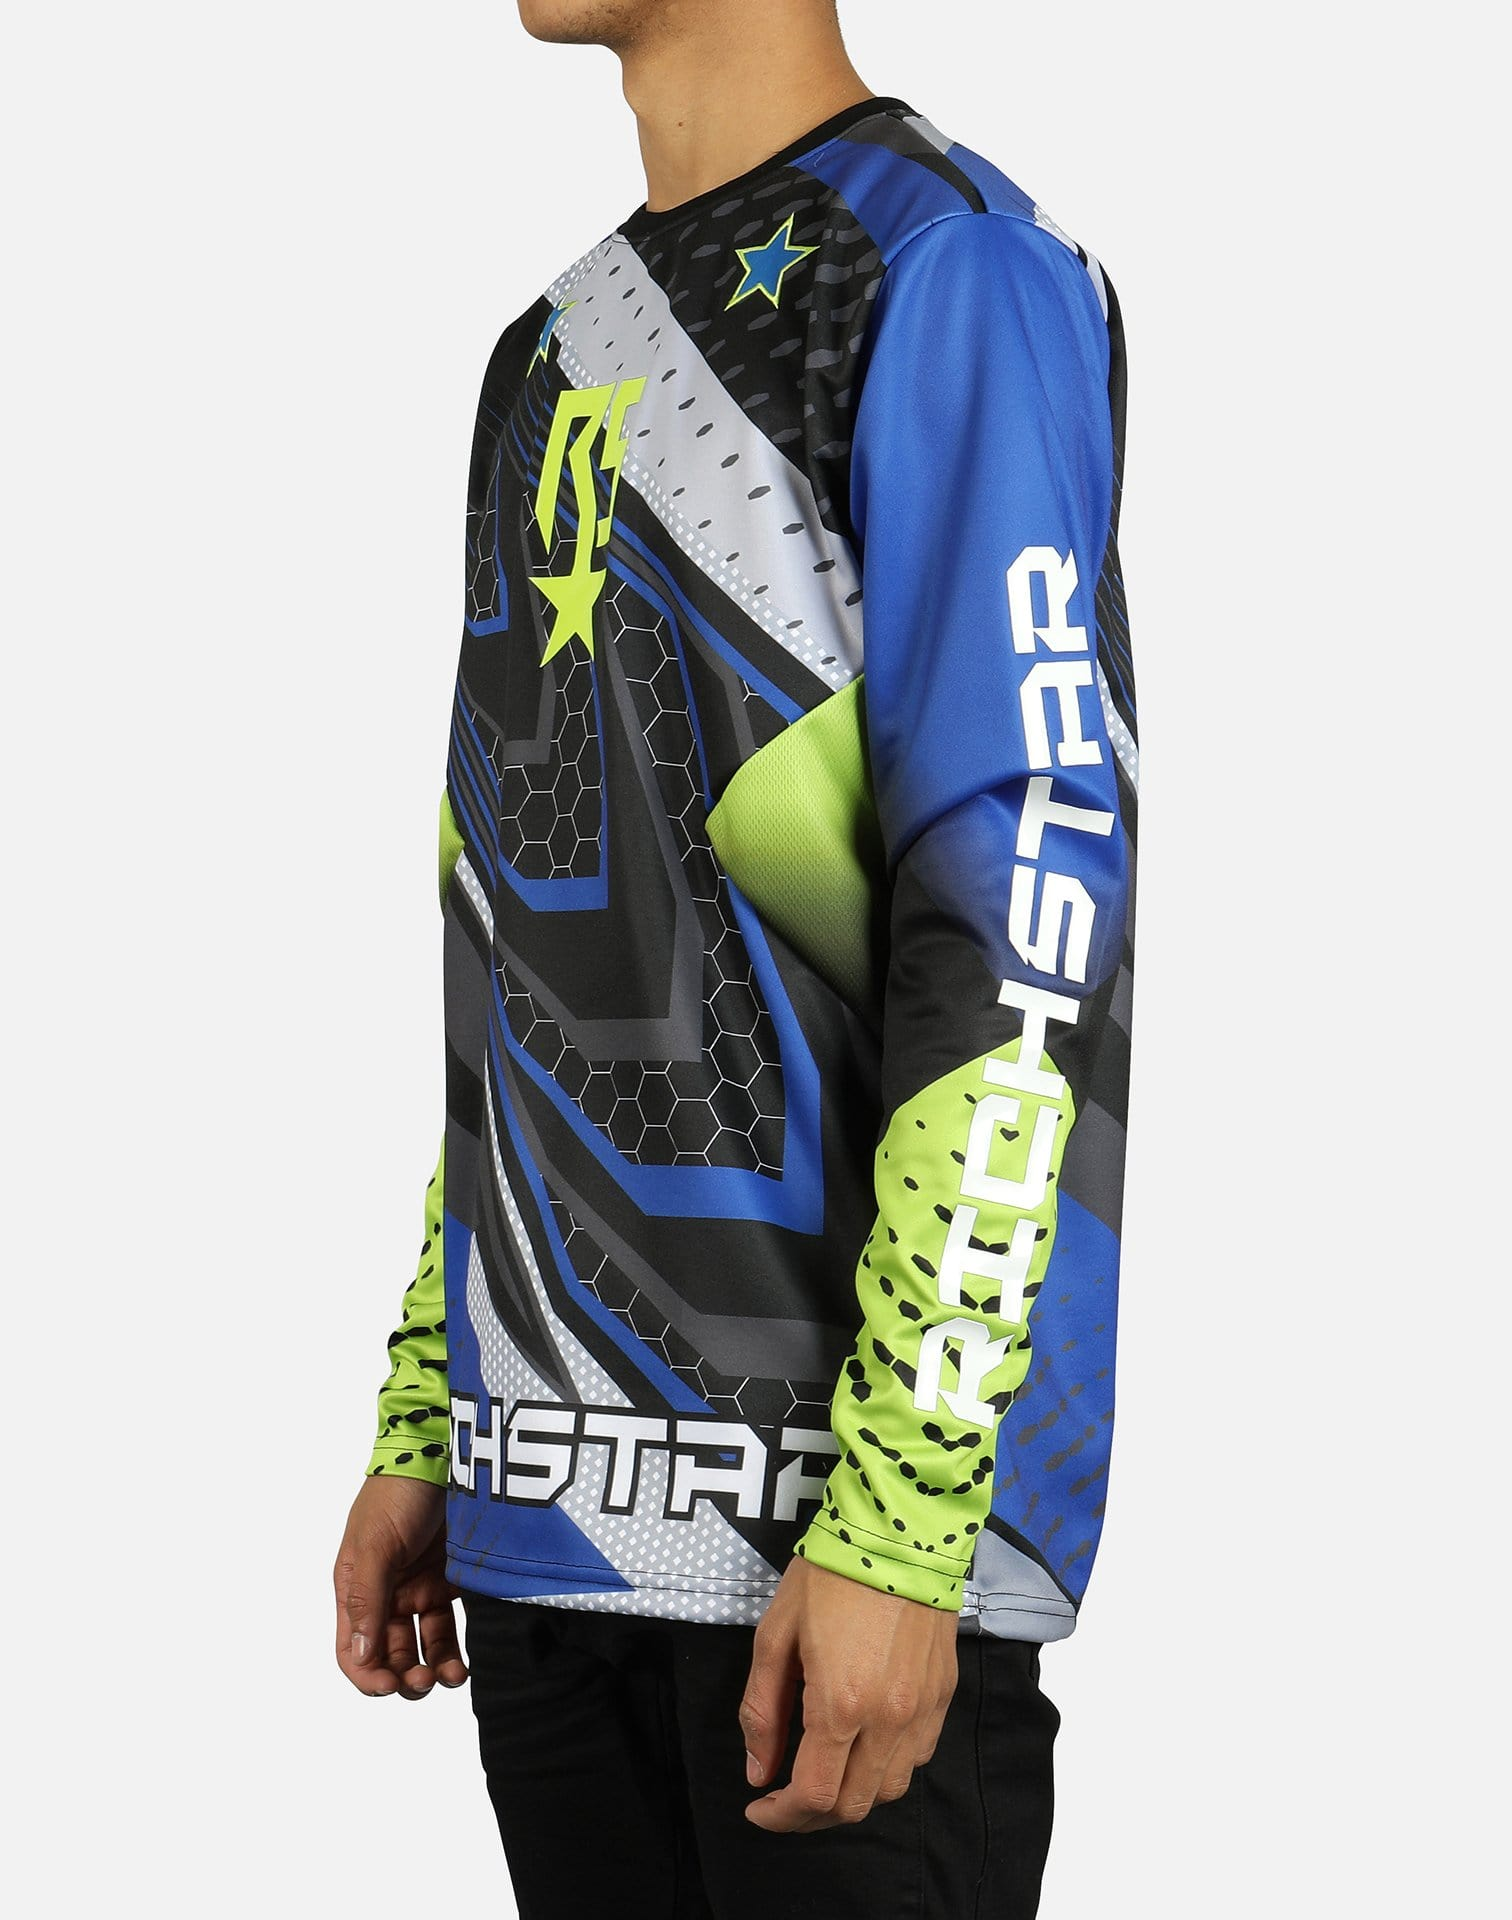 Rich Star Moto 2.0 Long Sleeve Shirt